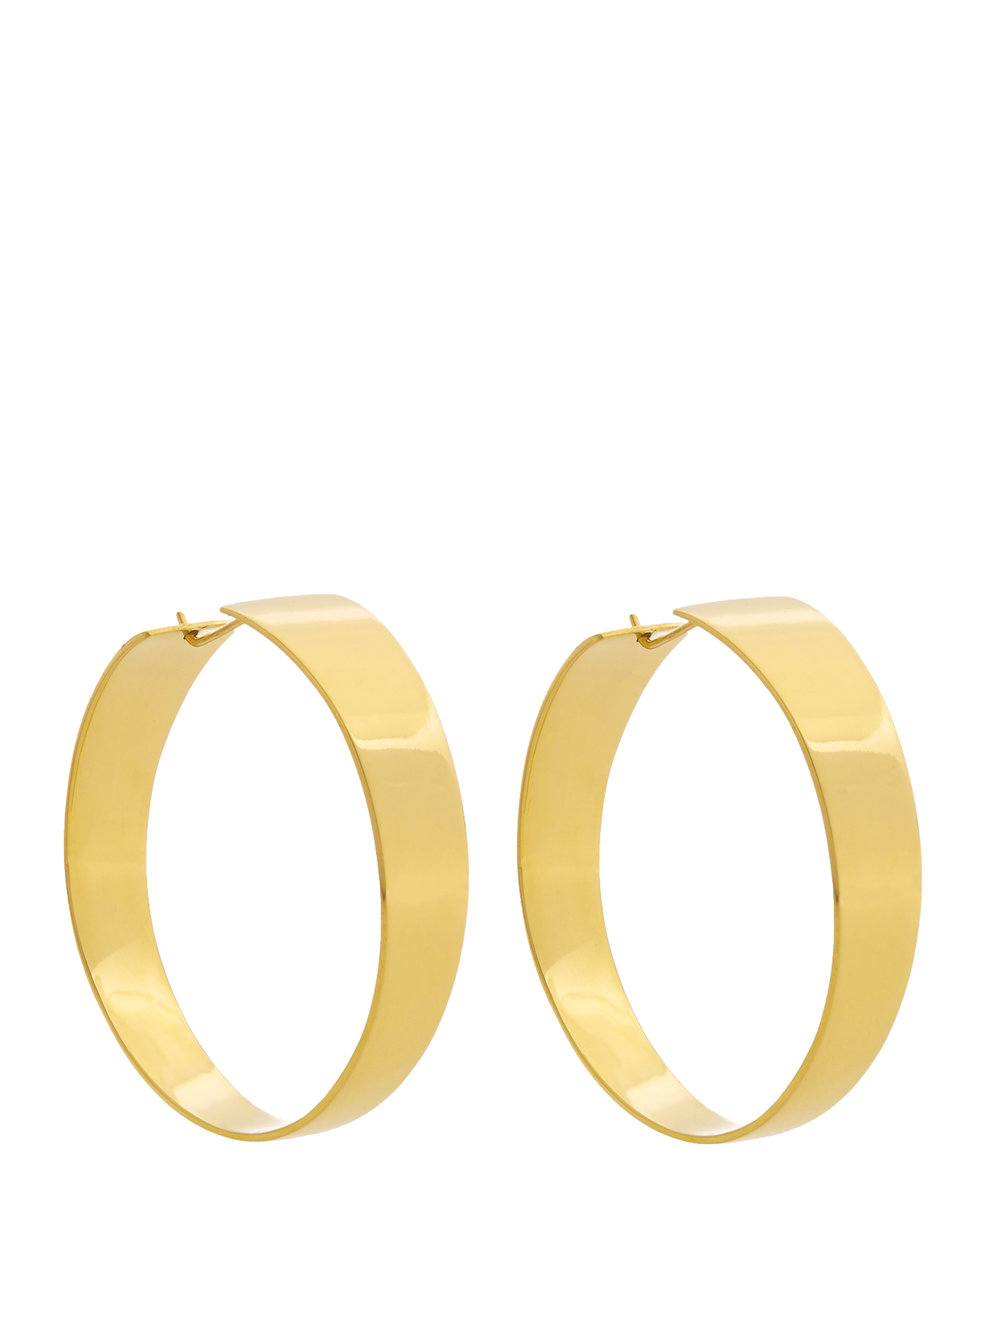 FAY ANDRADA - gold hoop earrings